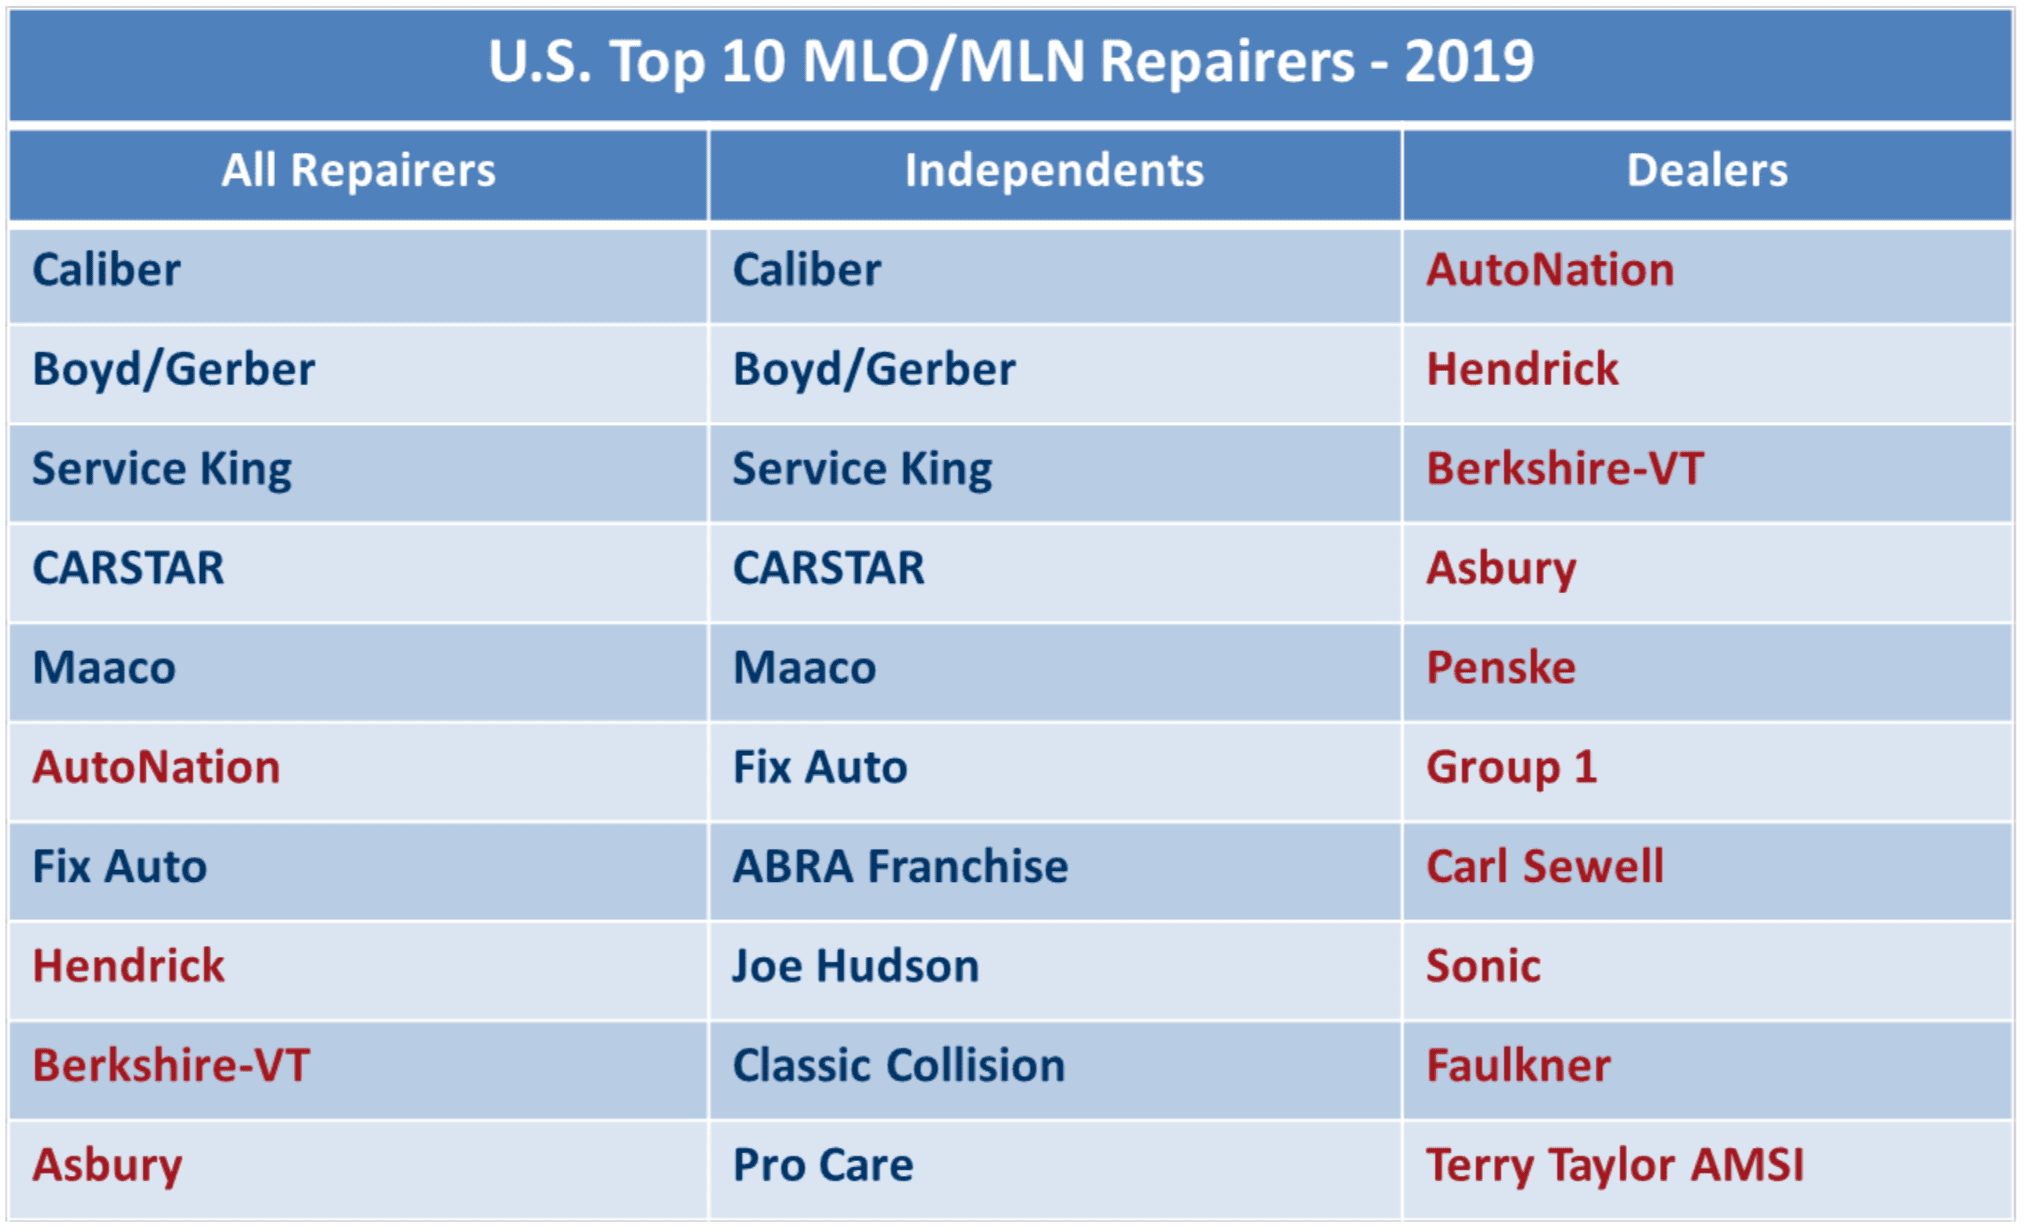 Top 10 U.S MLO/MLN Repairers 2019